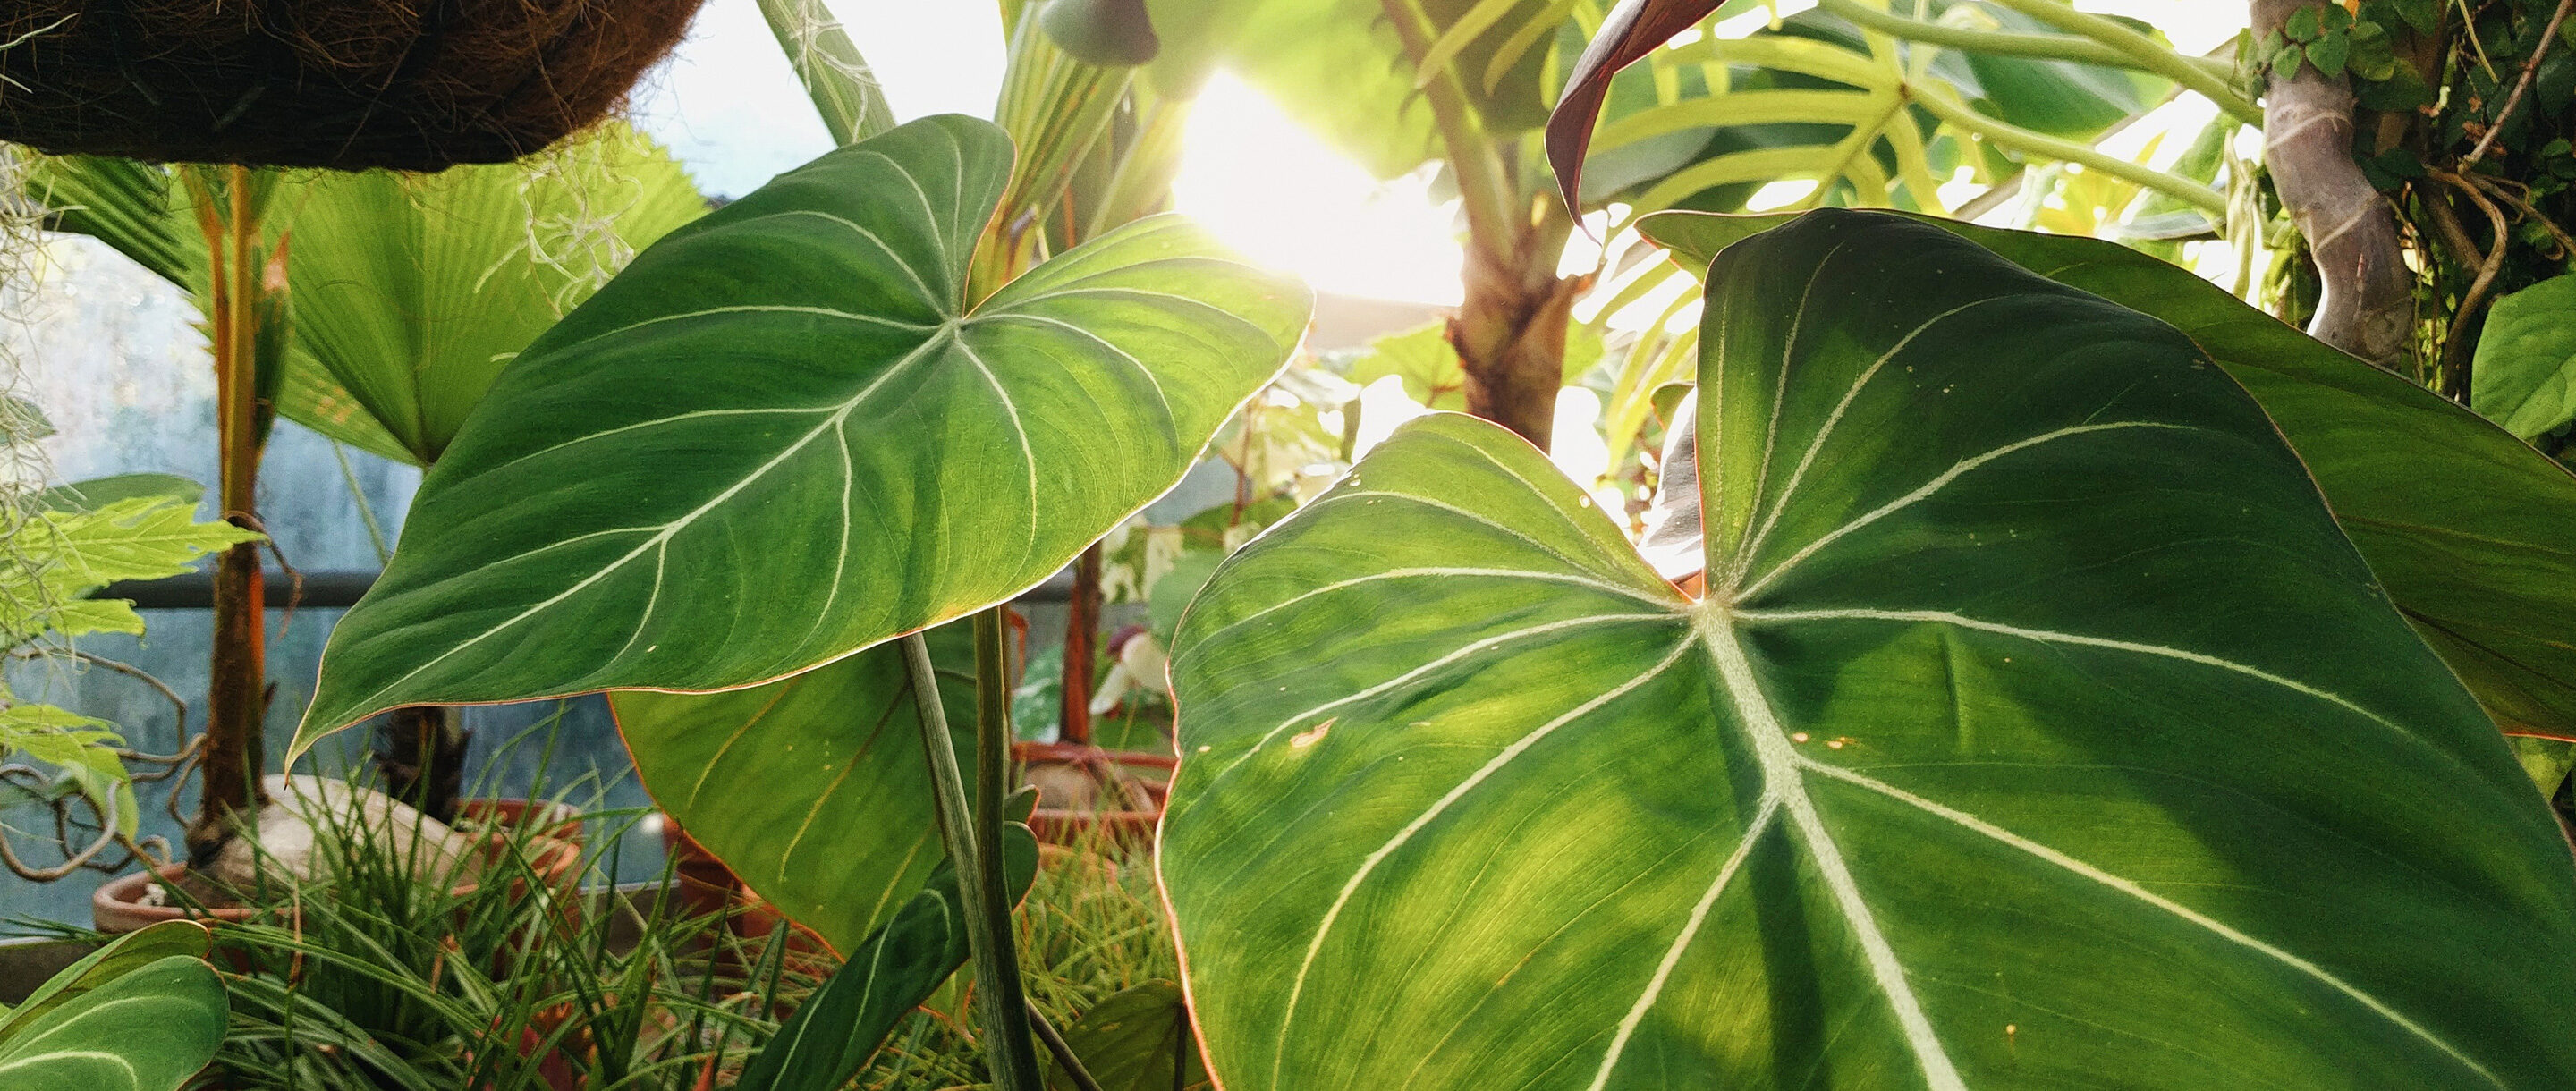 Photo of green leafy plants in close-up.